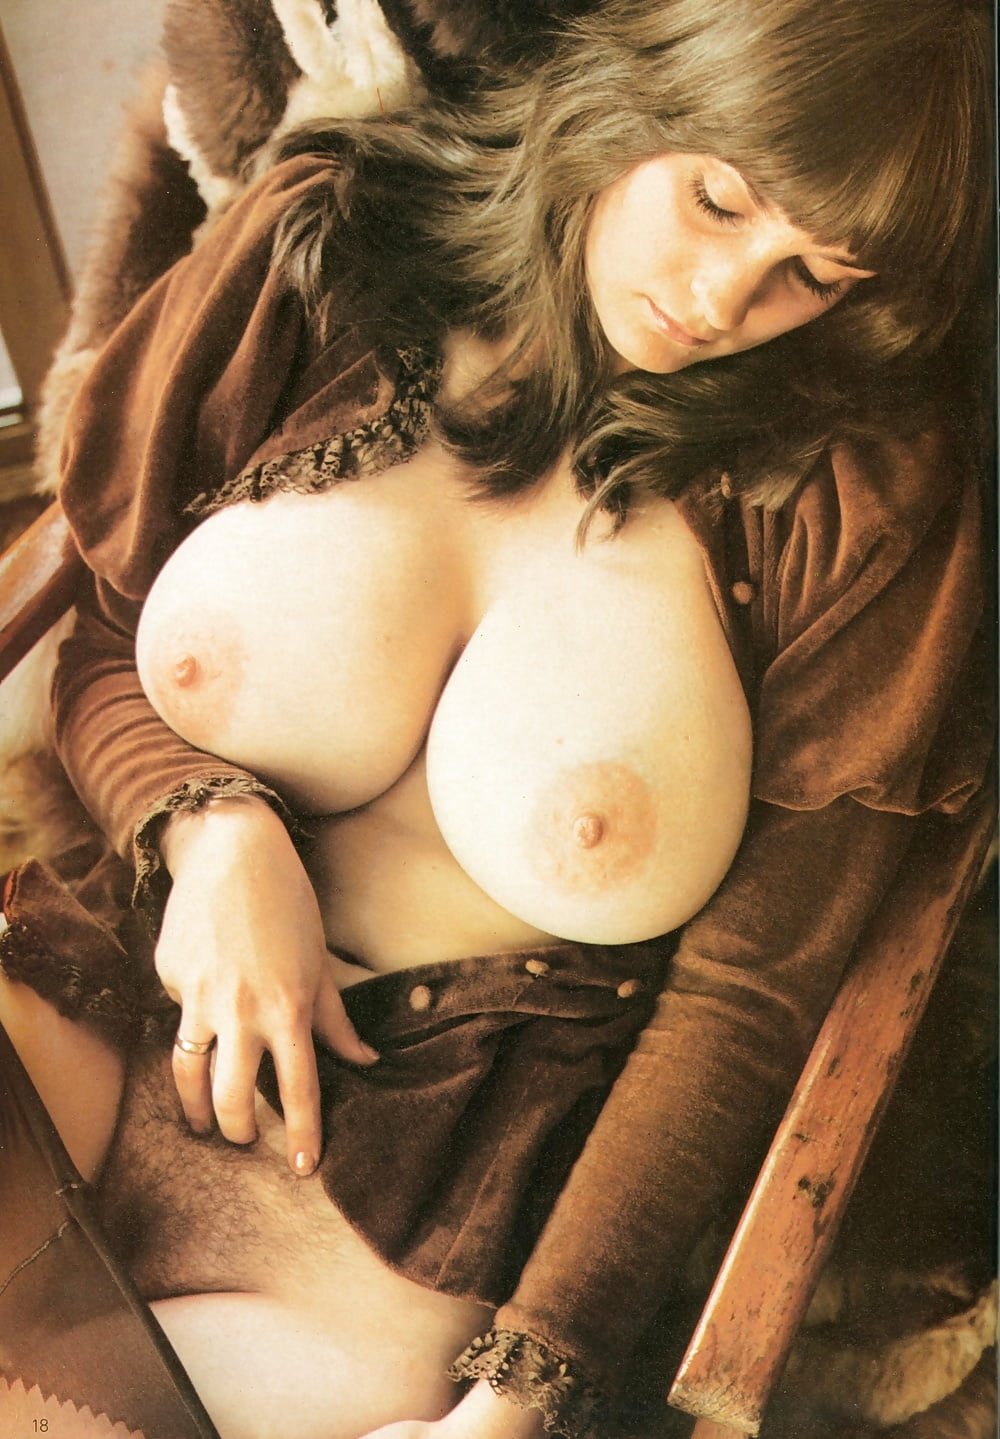 amateur-porn-young-vintage-boobs